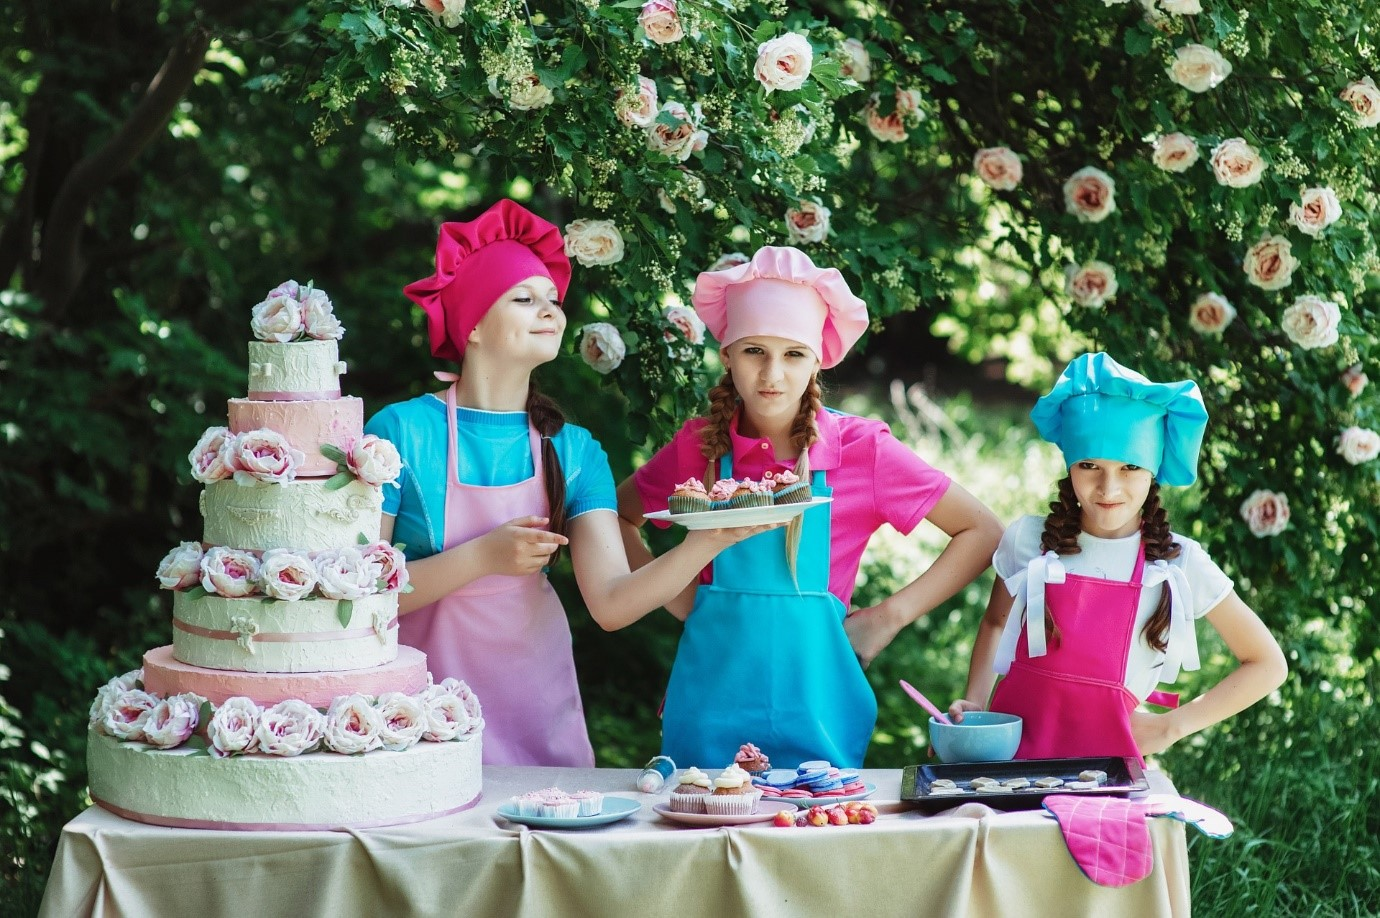 Top Tips for Baking With Little Ones